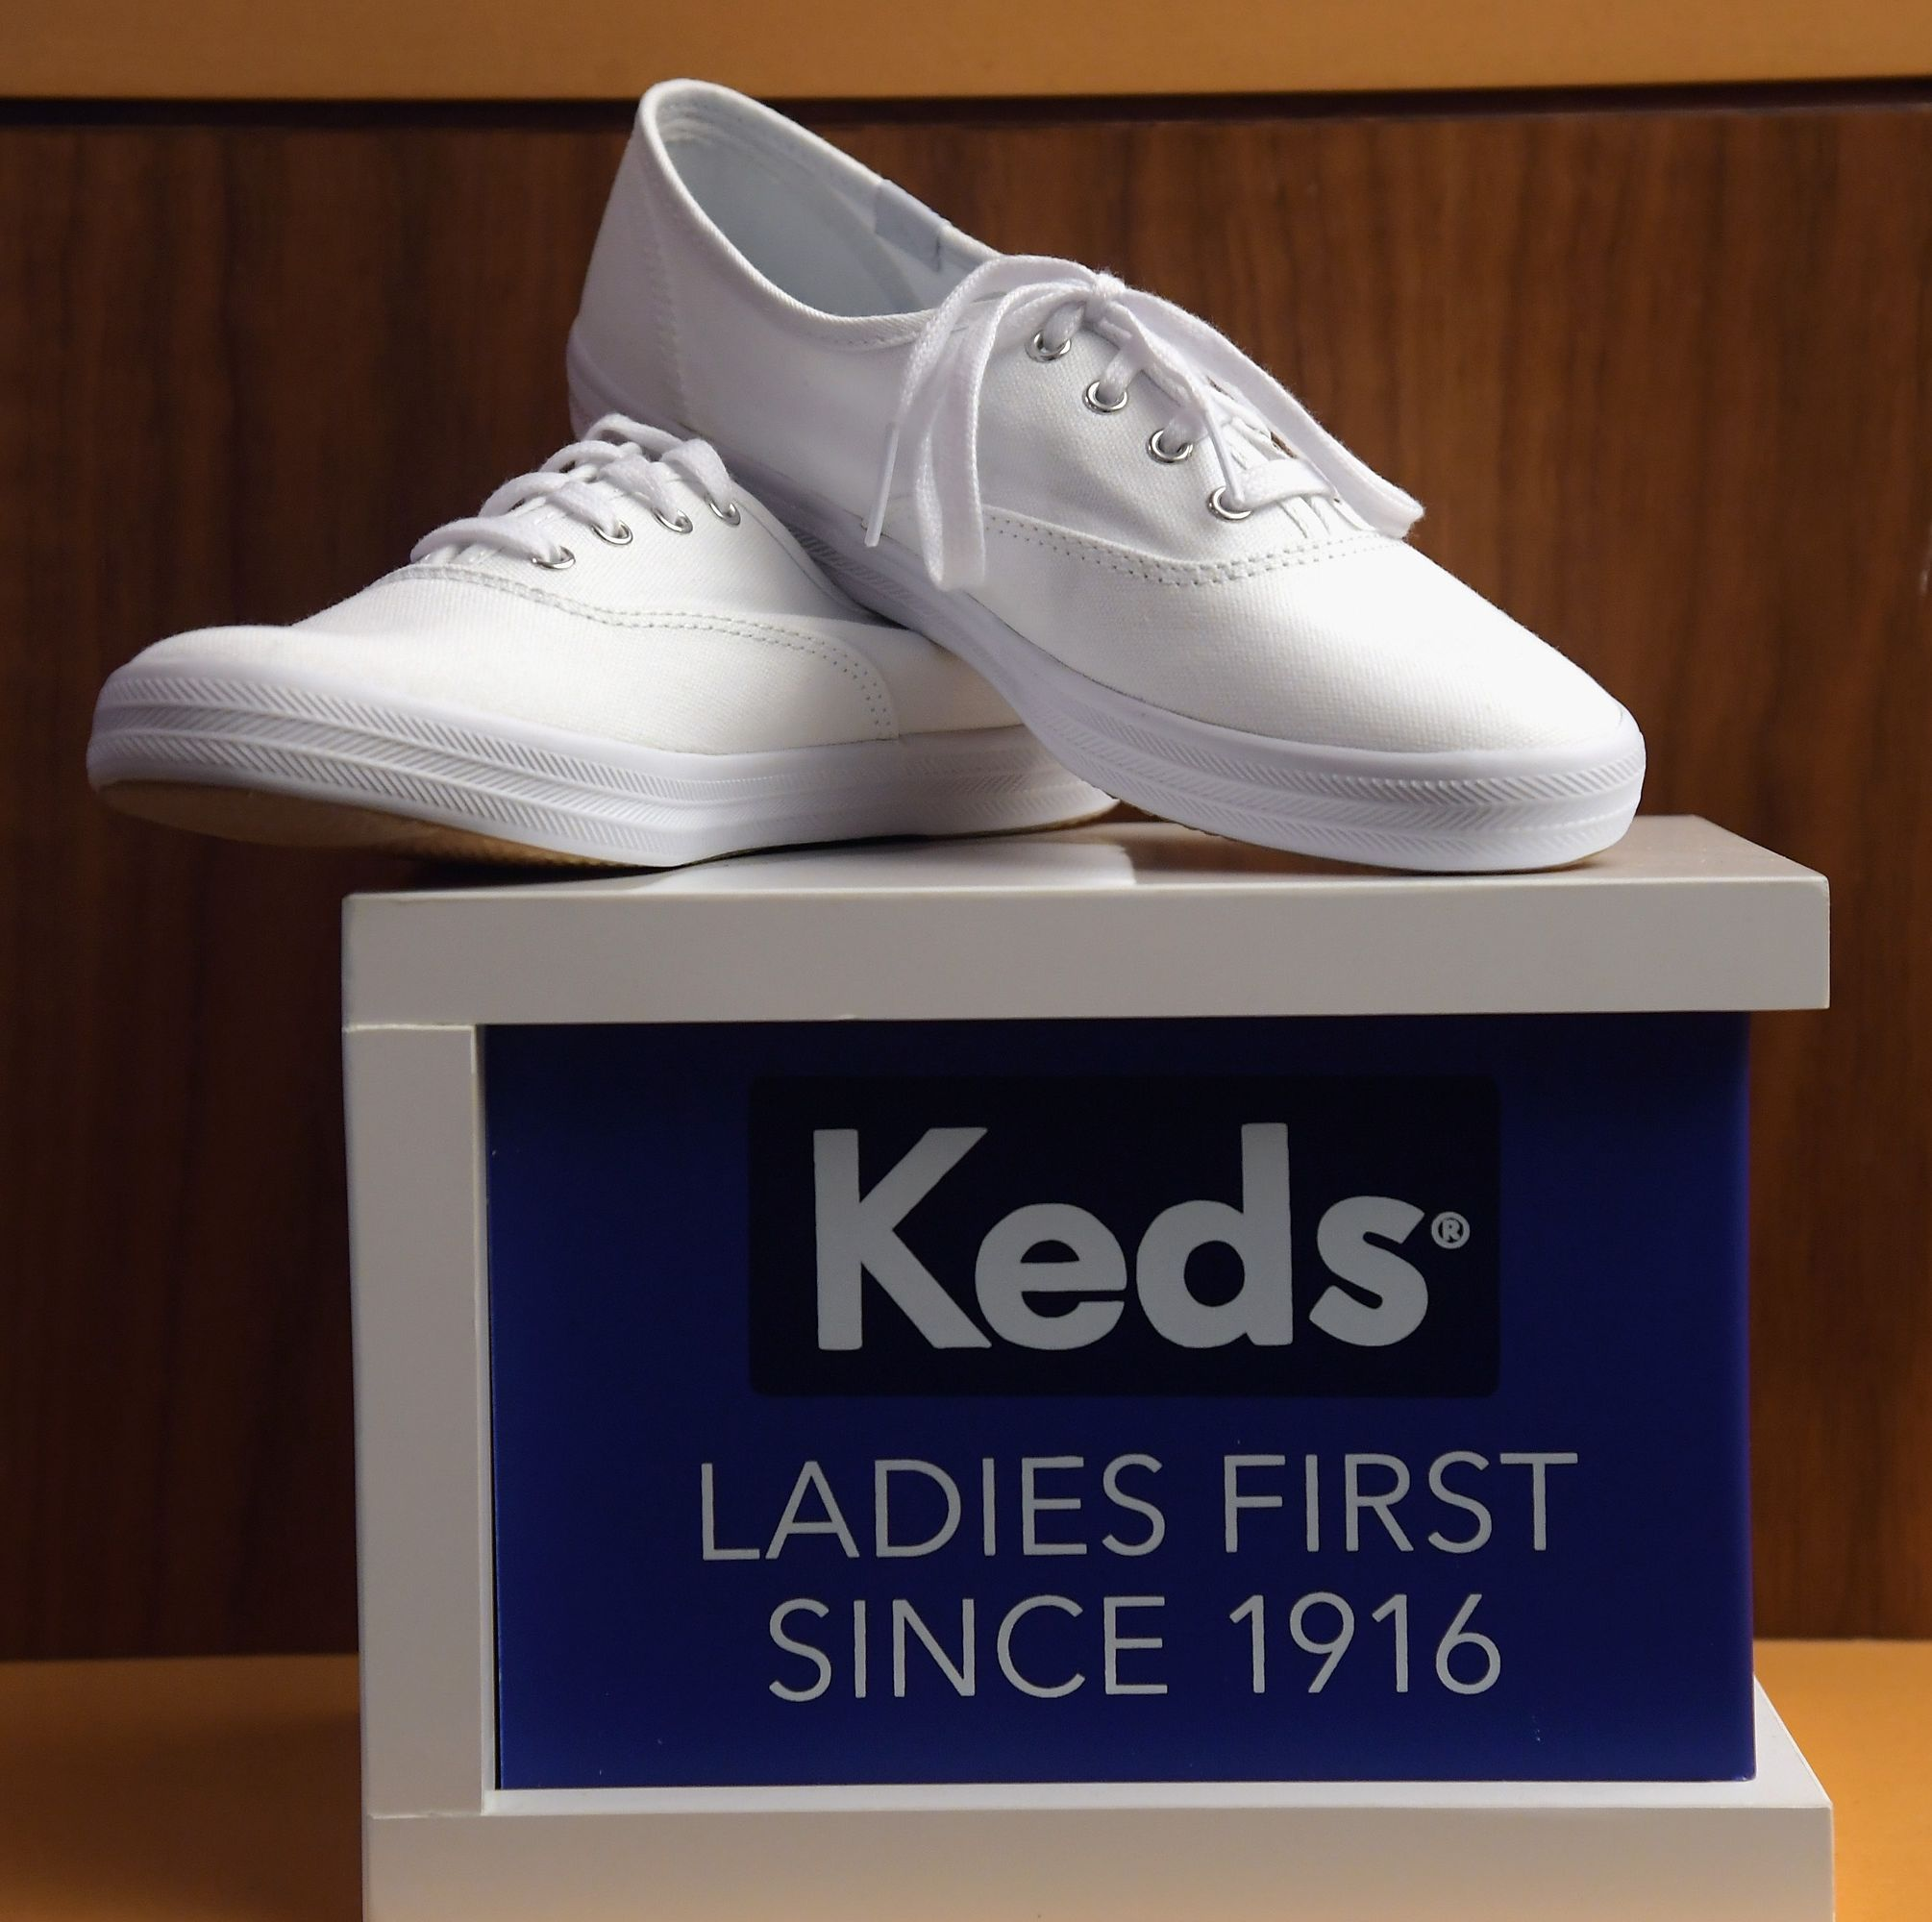 Keds Celebrates International Women's Day With Violetta Komyshan In NYC